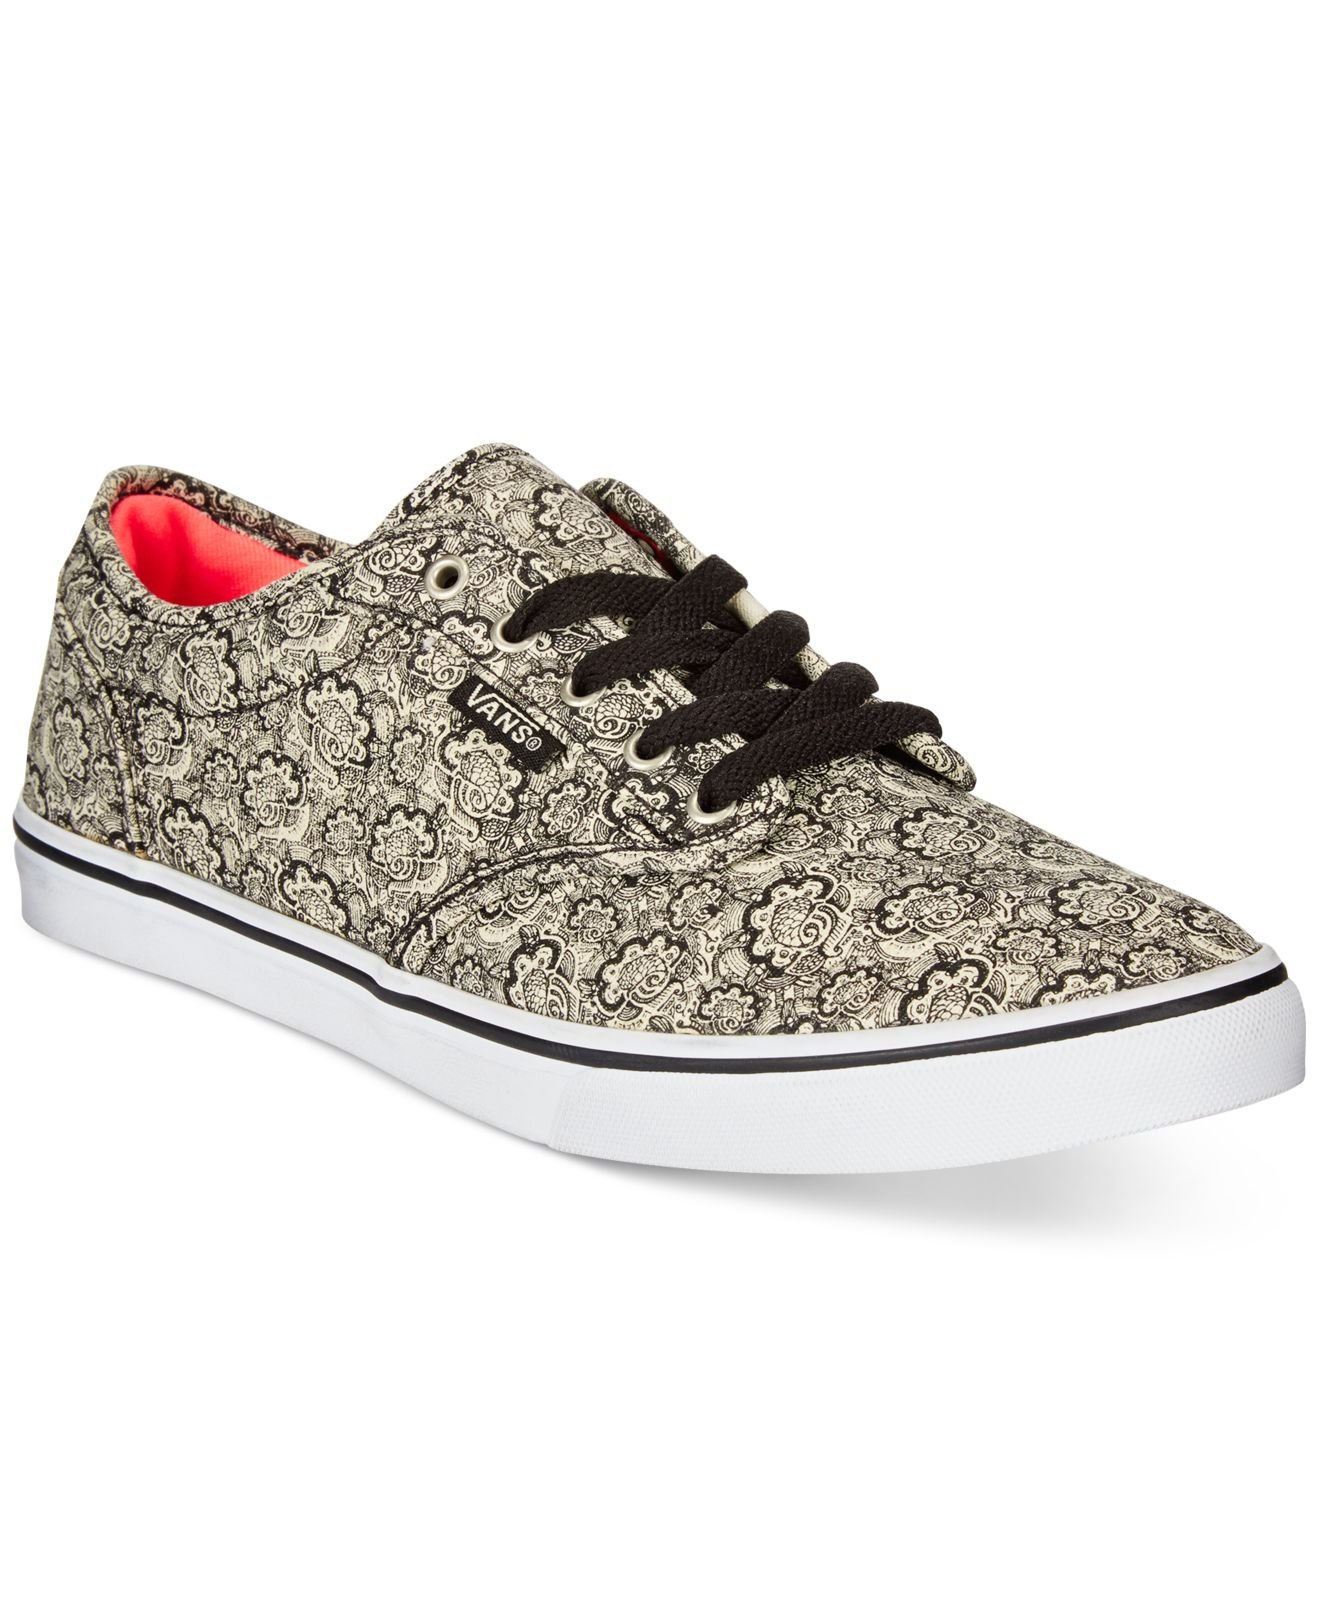 4e3cd4fd081 Lyst - Vans Women s Atwood Low Henna Sneakers in Black